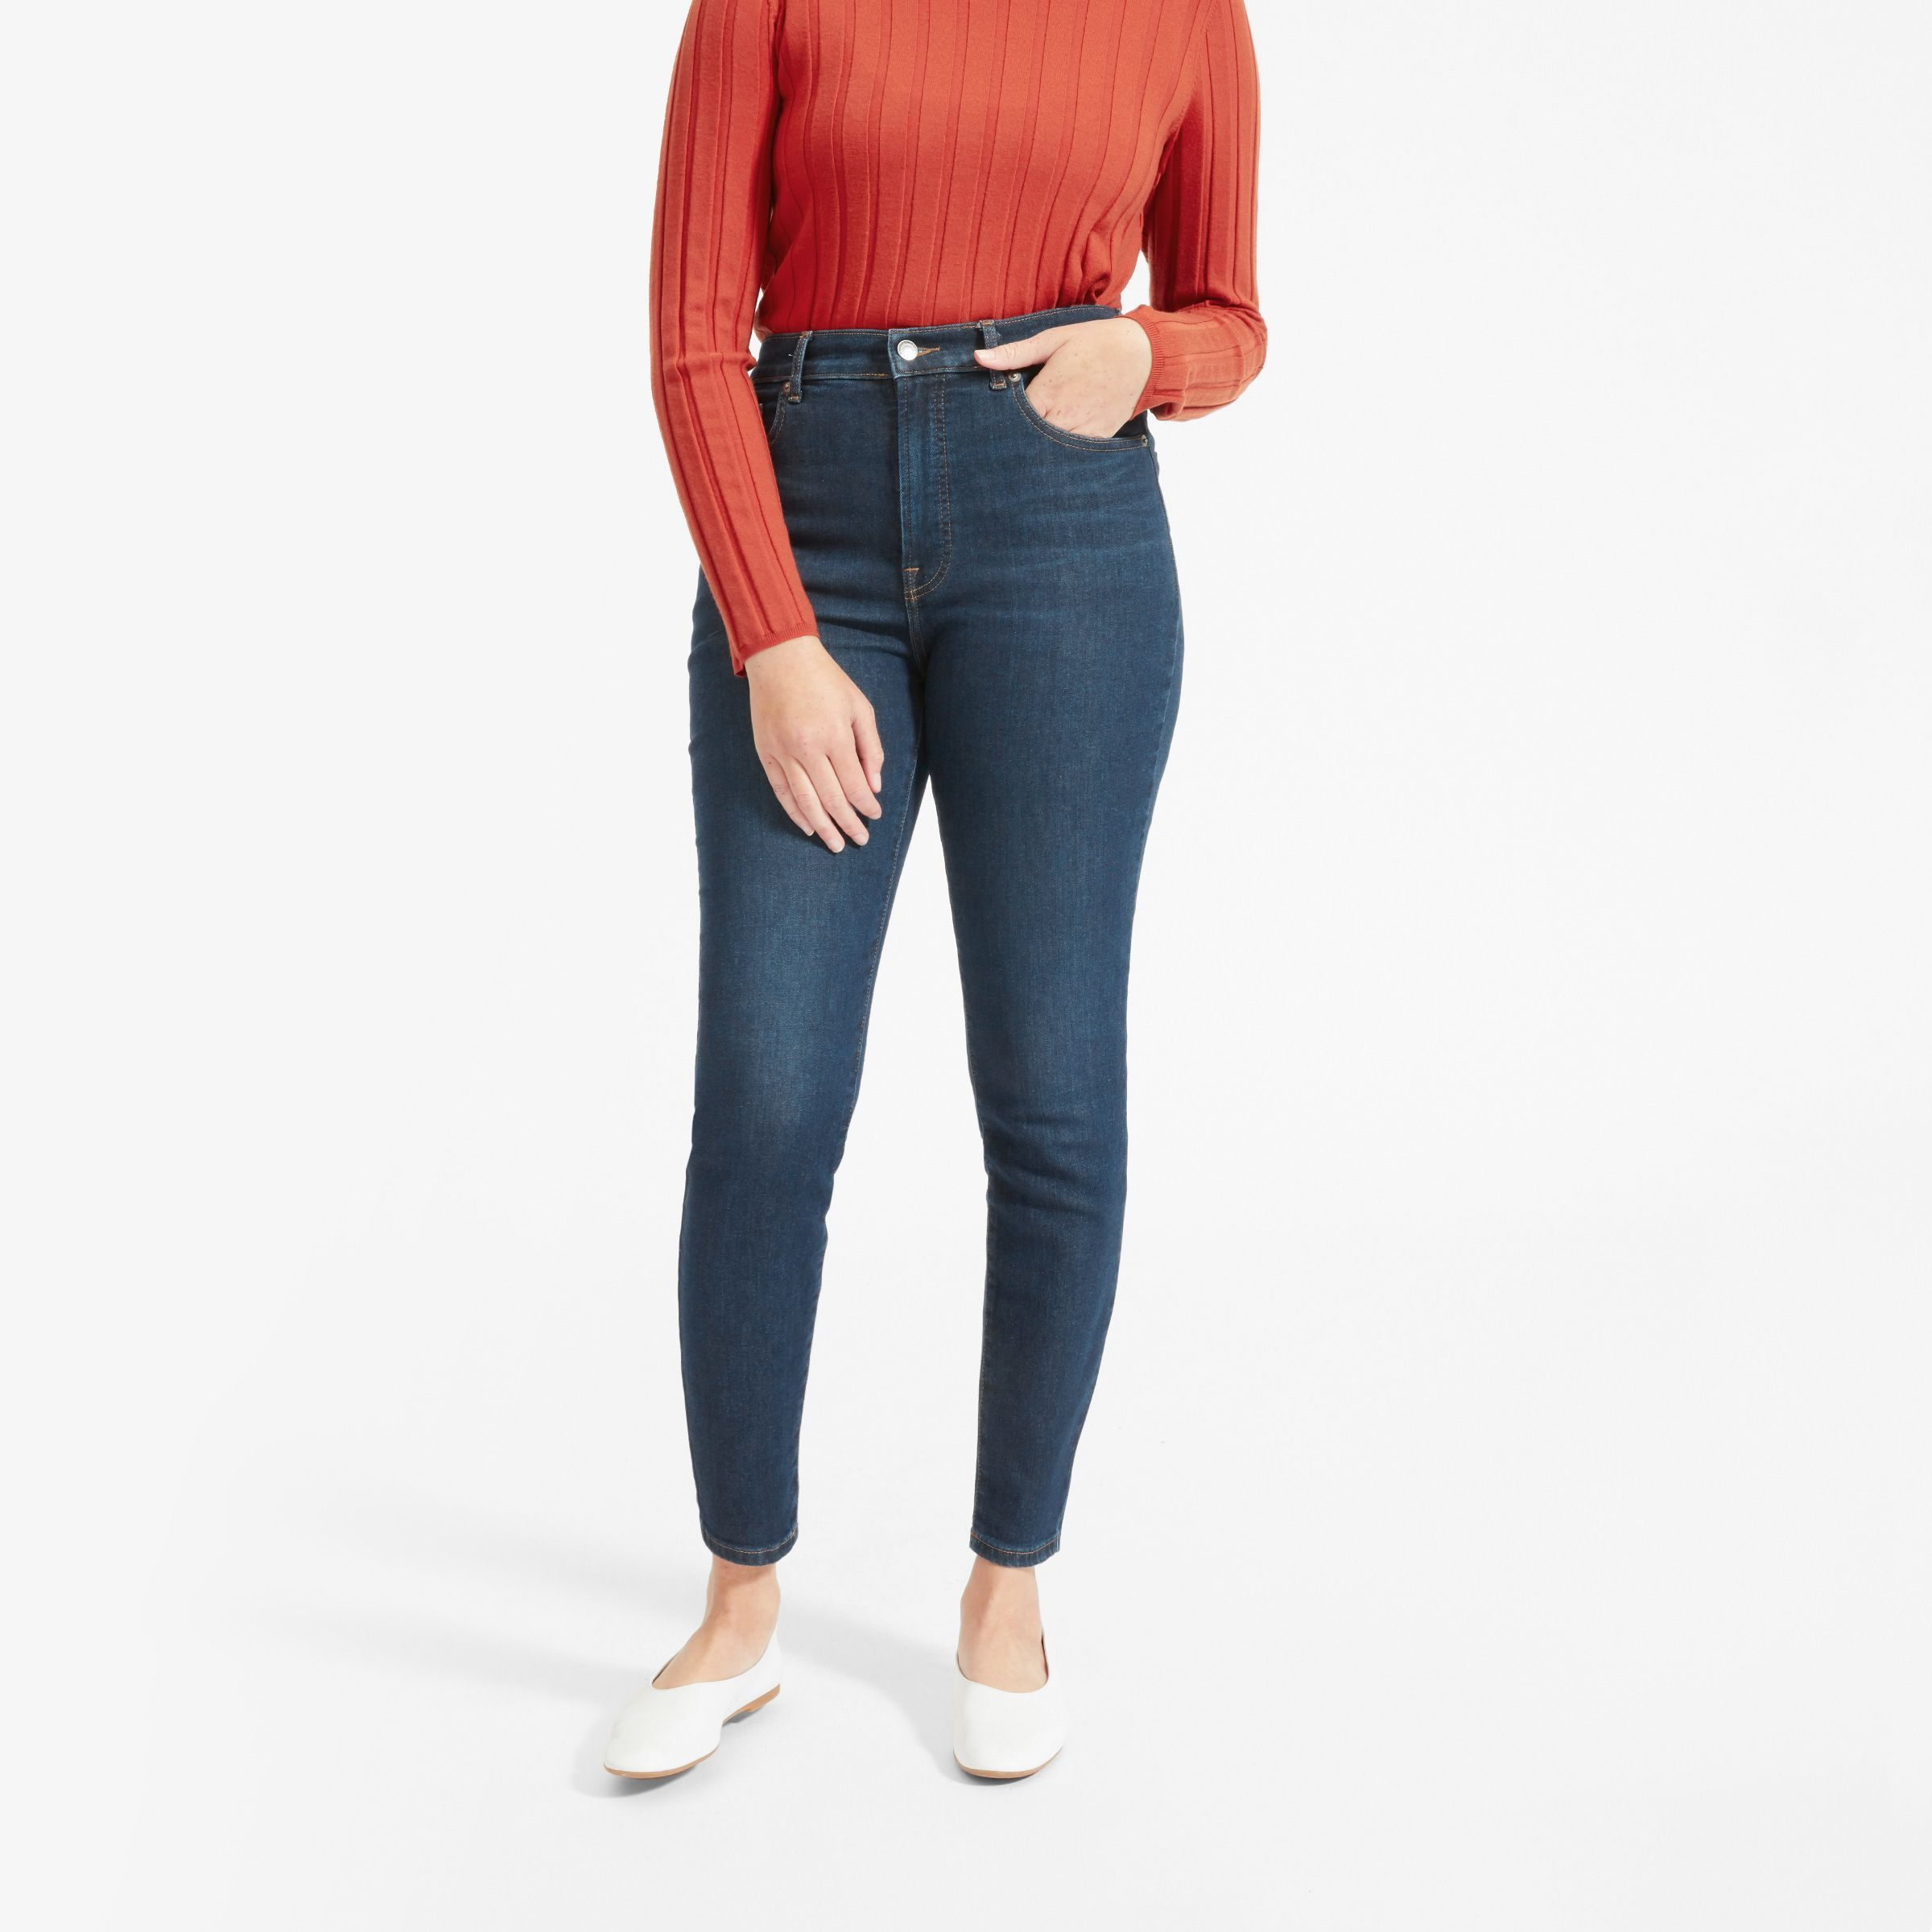 d7a5ccfbf0a 20 Best High Waisted Jeans for Women — 2019 s Top High-Waisted Denim Brands